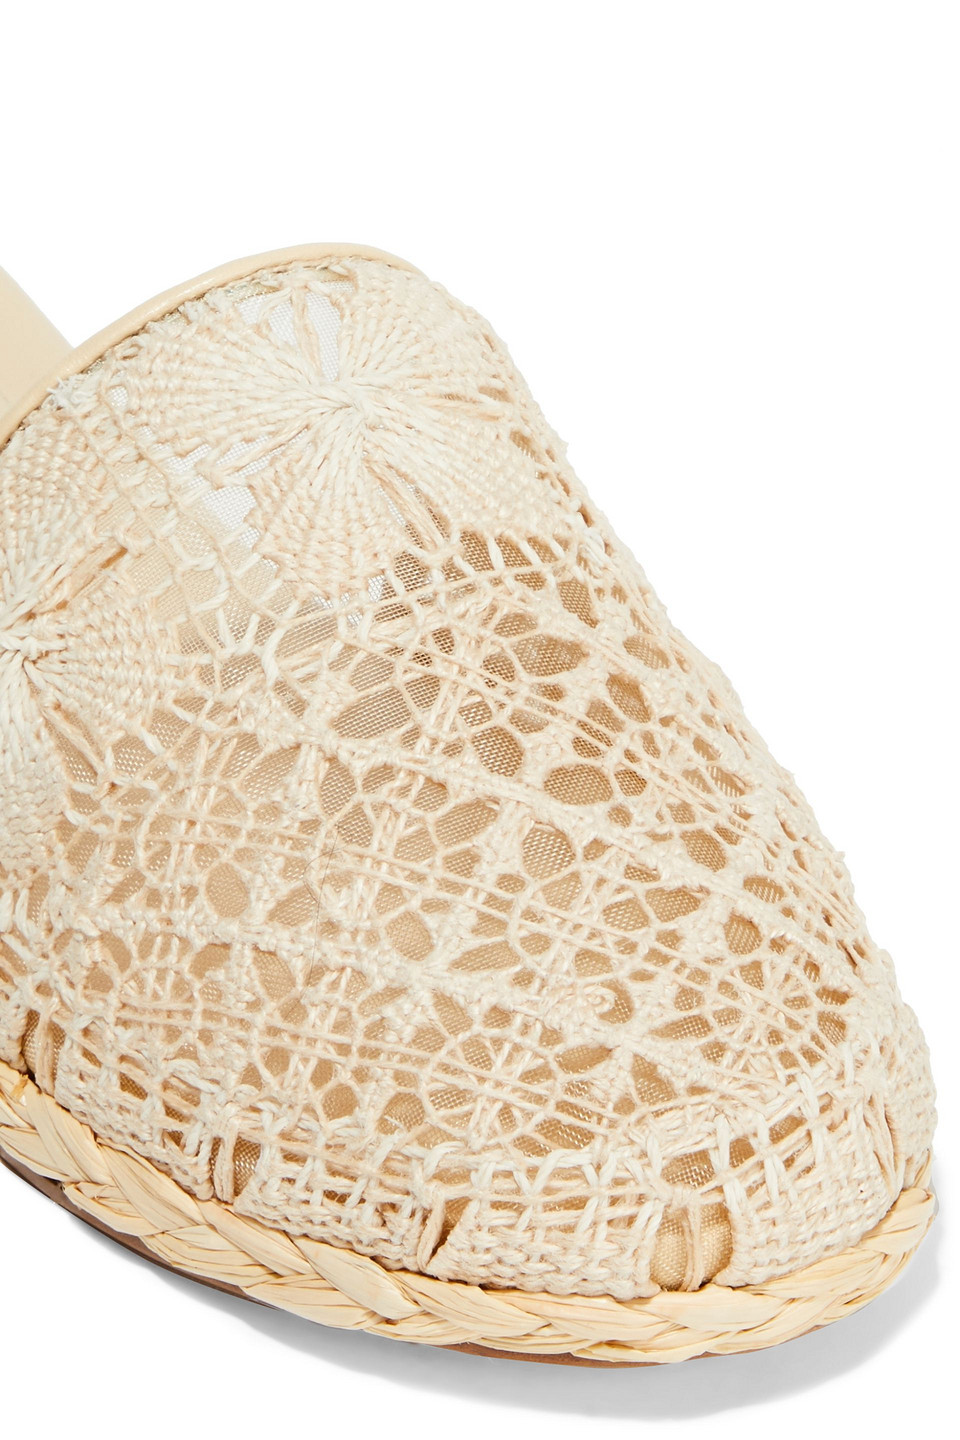 Zimmermann | Zimmermann Woman Raffia-trimmed Crocheted Cotton Slippers Cream | Clouty